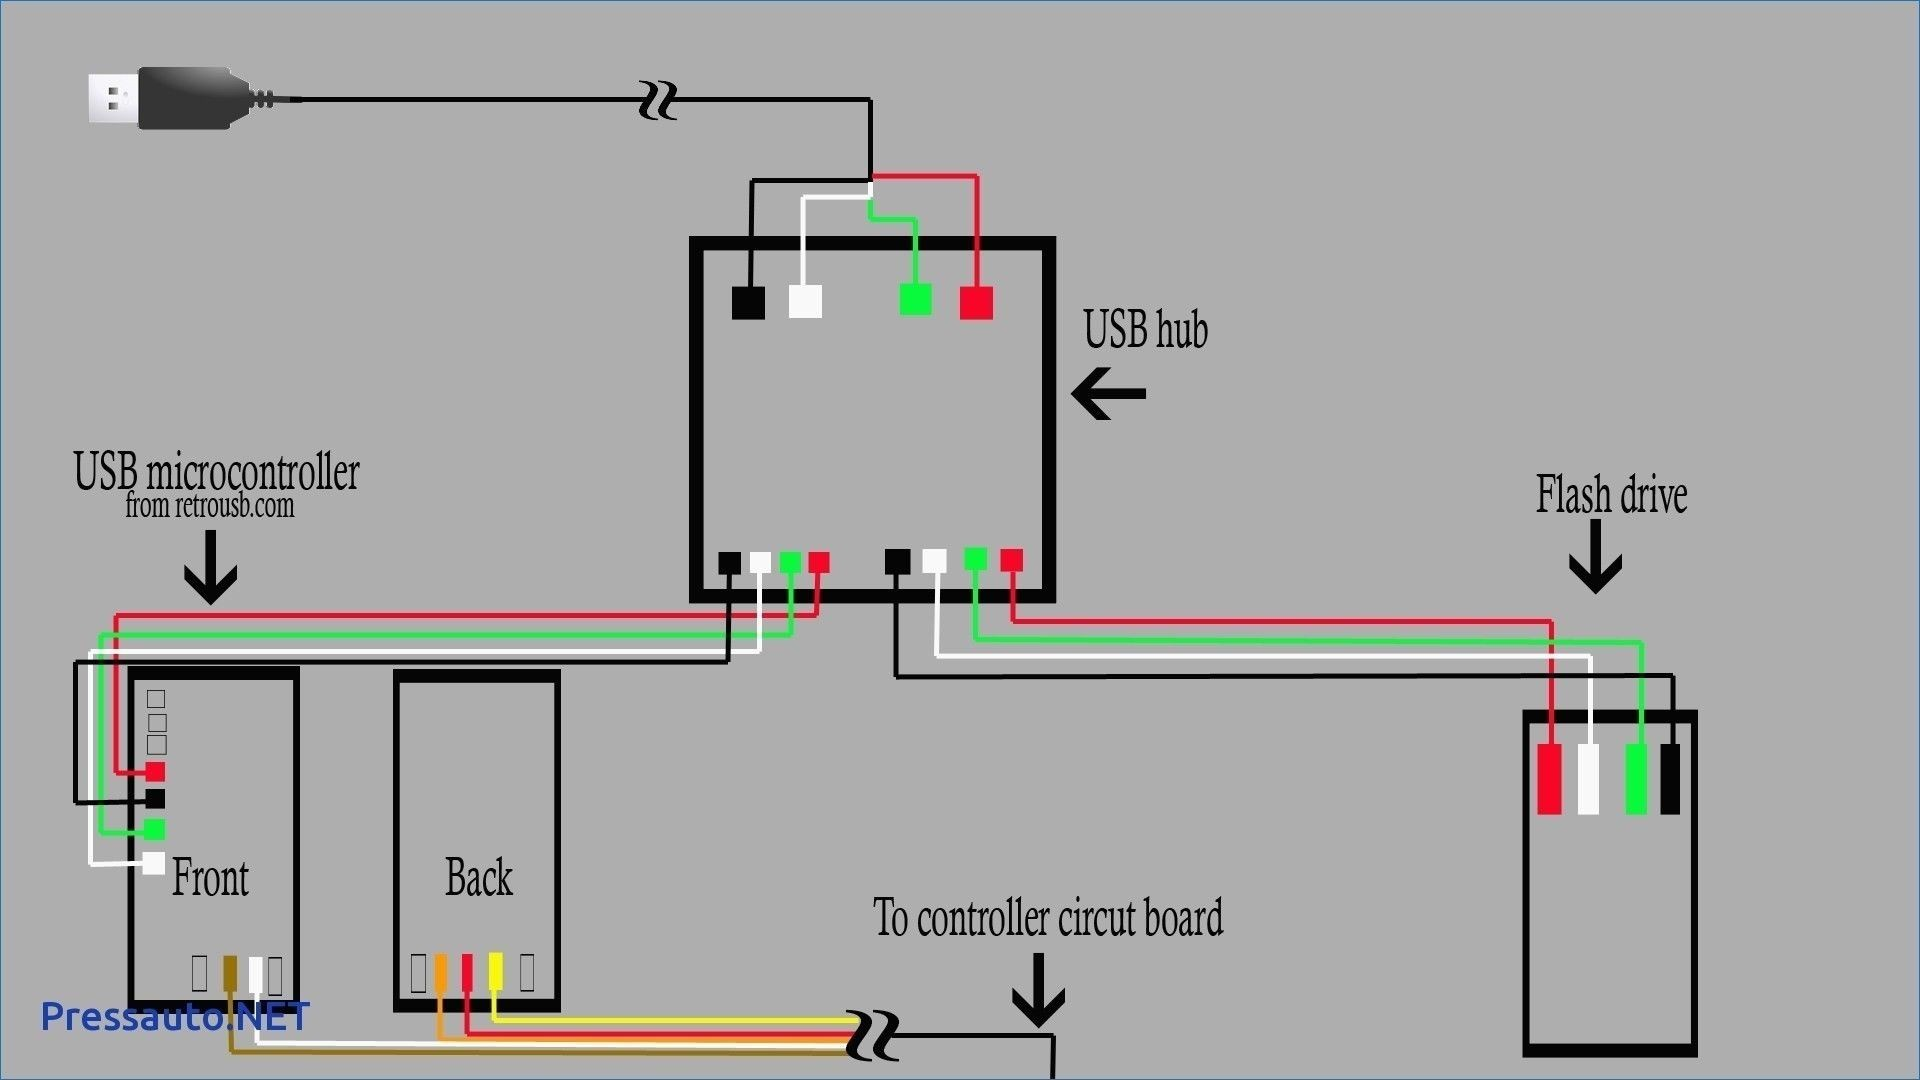 Hdmi to Av Wire Diagram Wiring Diagram Vga to Hdmi New Great Rca Cable Gallery Of Hdmi to Av Wire Diagram